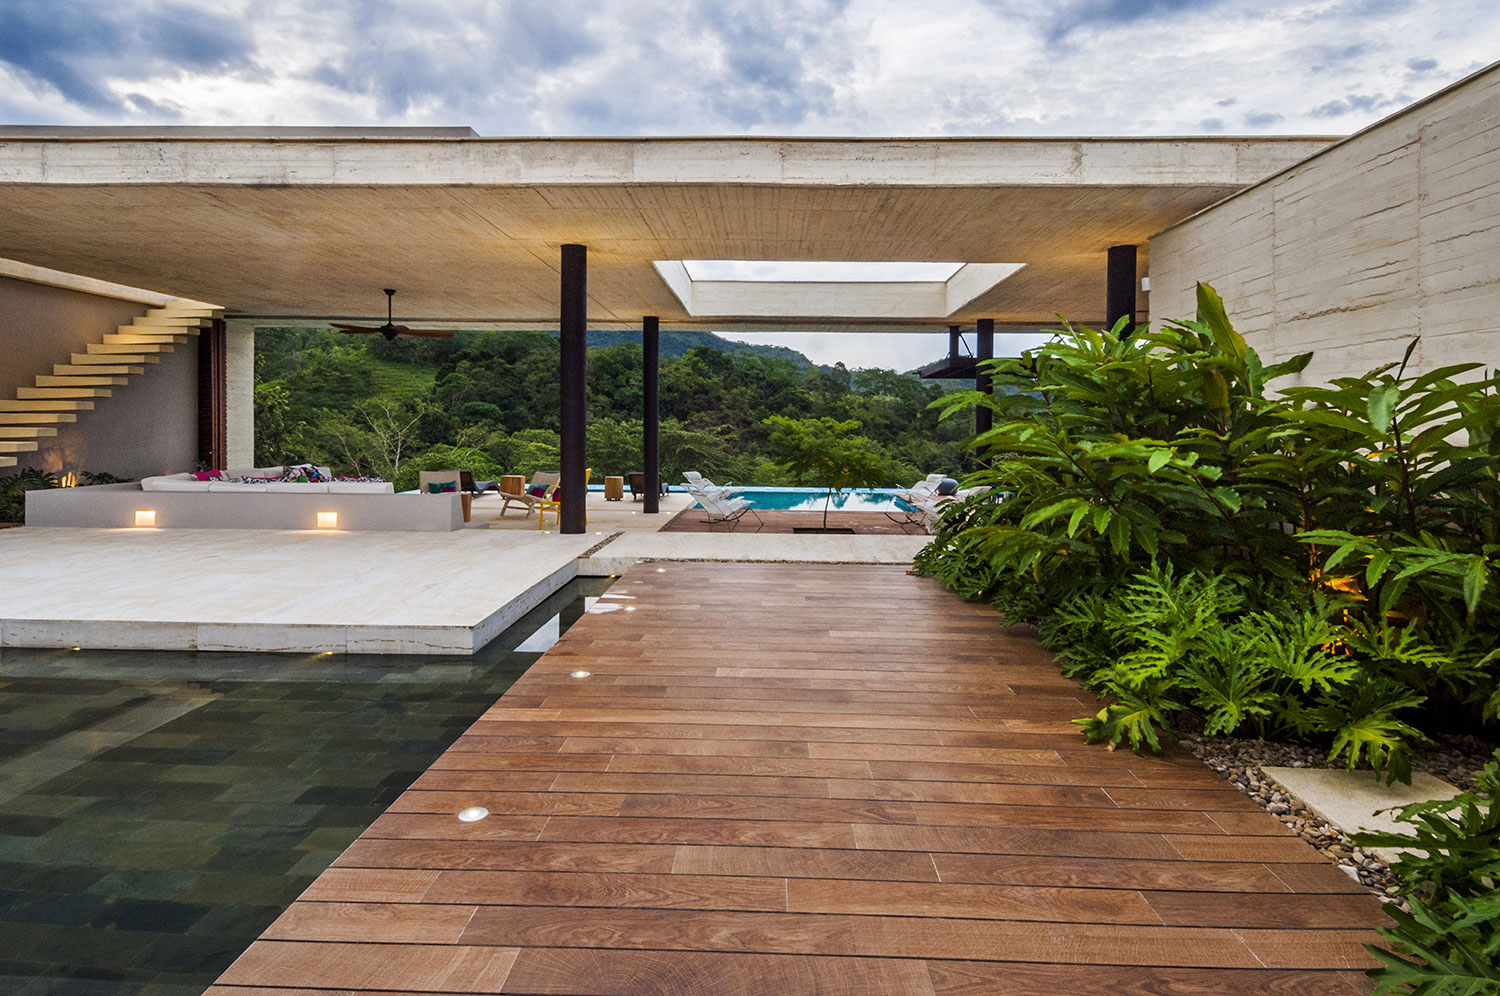 Casa 7a by arquitectura en estudio natalia heredia for Design casa